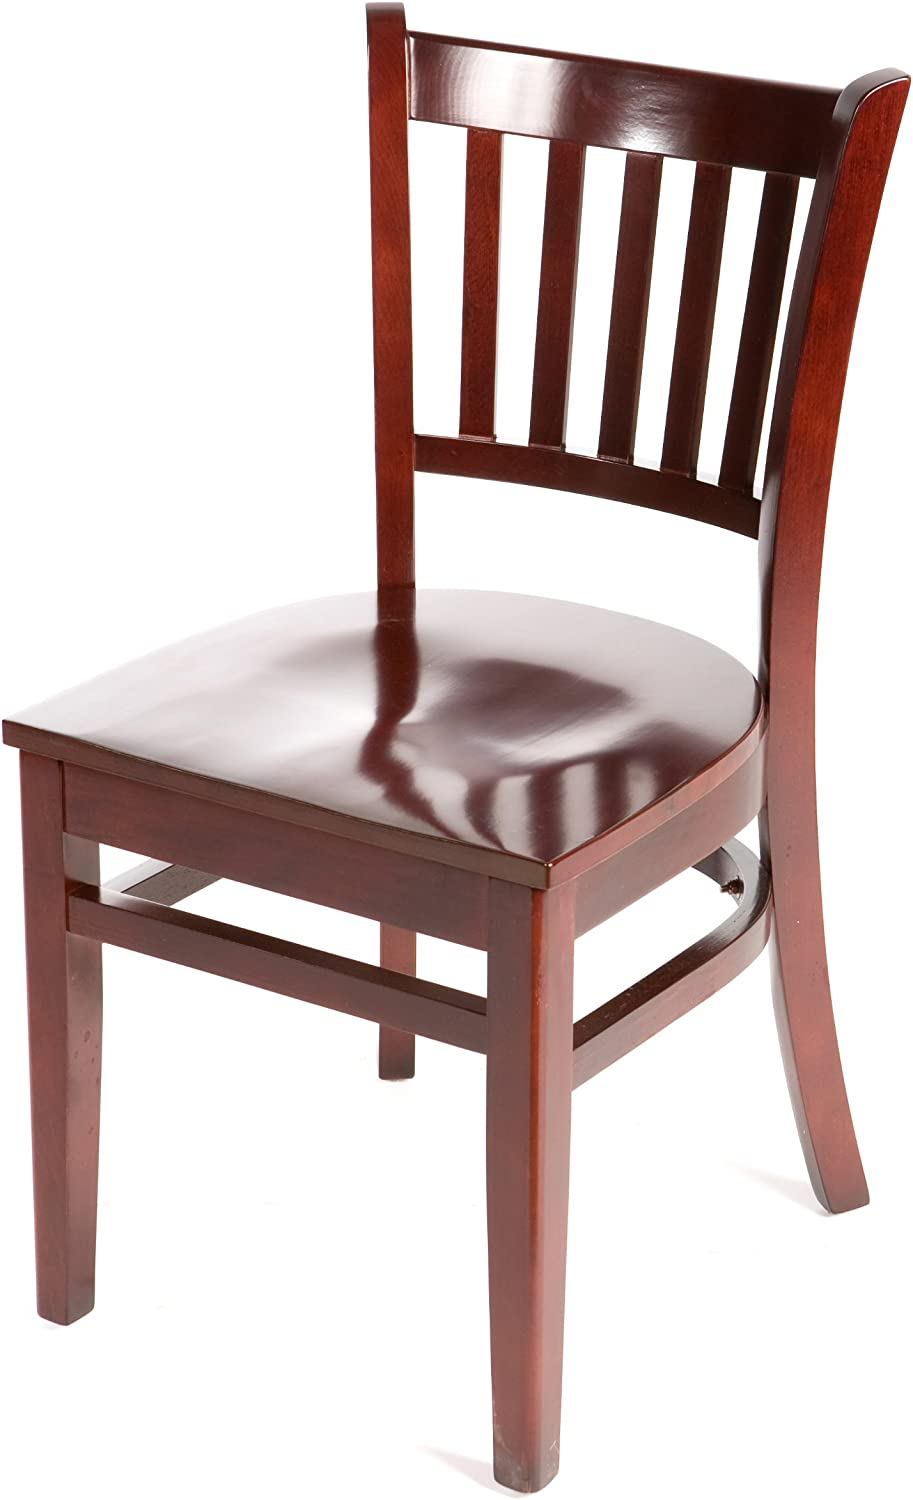 Oak Street Manufacturing WC102MH Solid Mahogany Wood Frame greenical back Dining Chair with Mahogany Wood Seat, 18  Width x 17  Depth